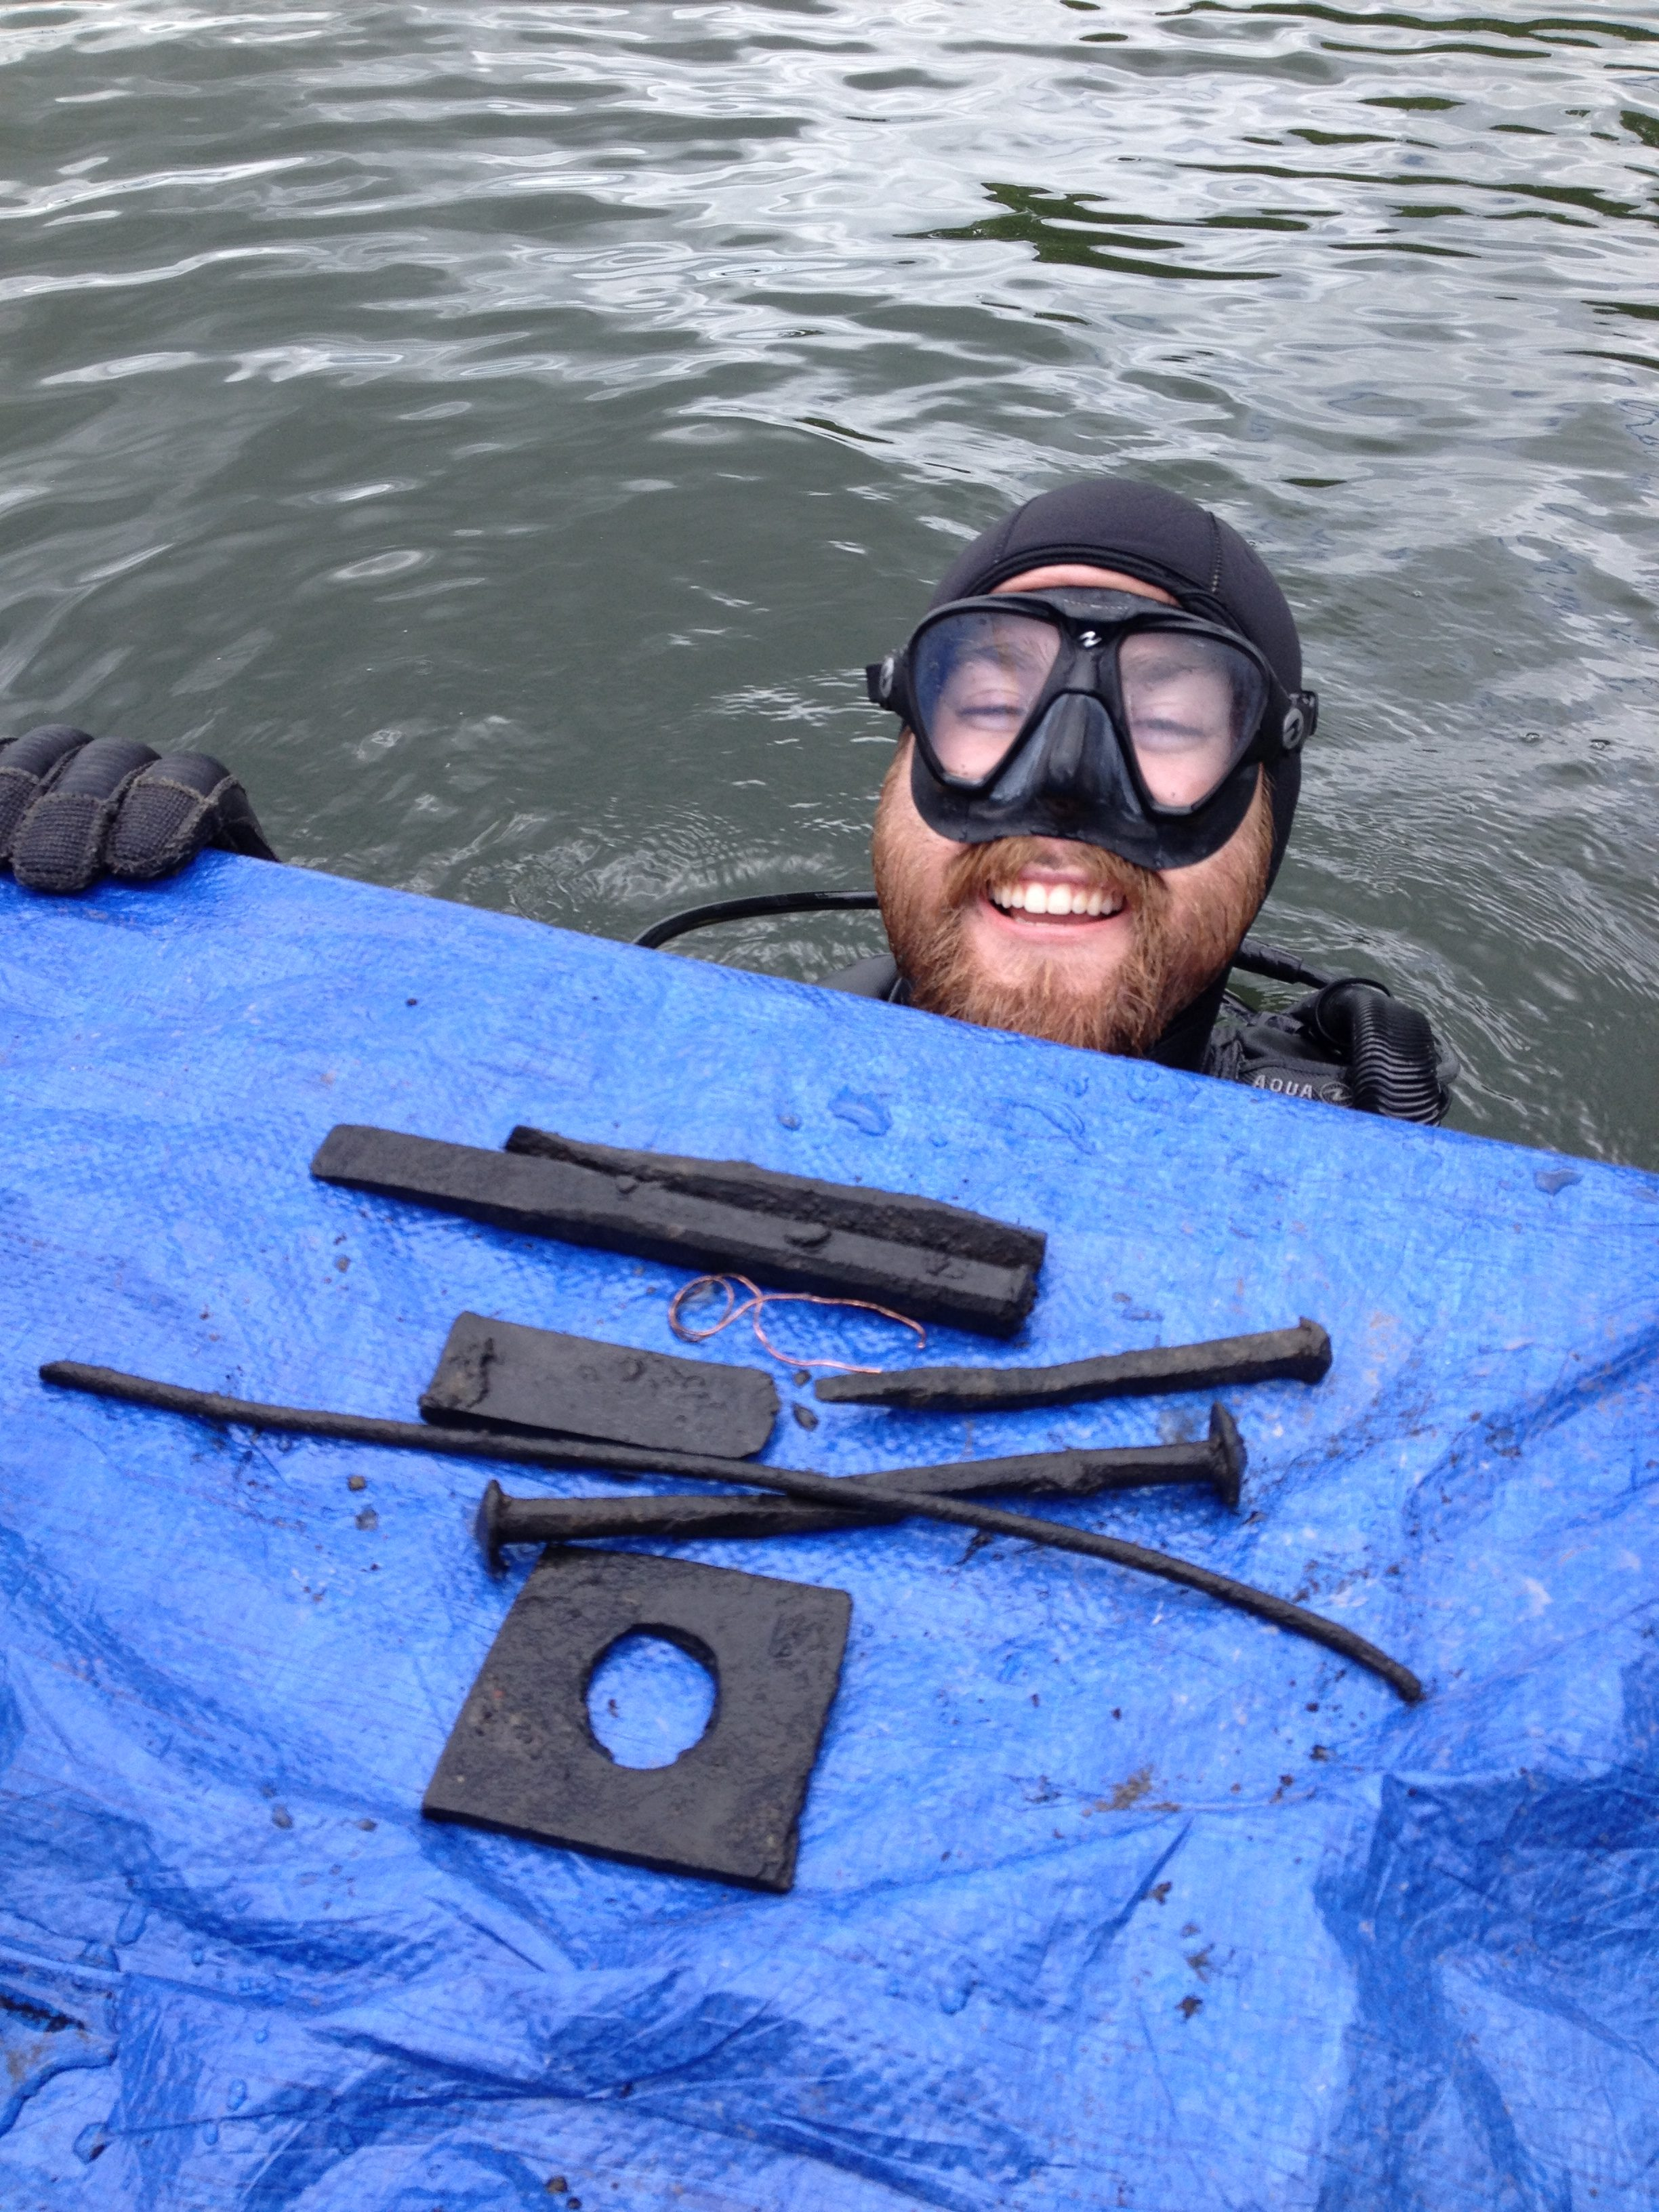 Dan Bishop bringing up the chisels and other artifacts recovered during the dive.